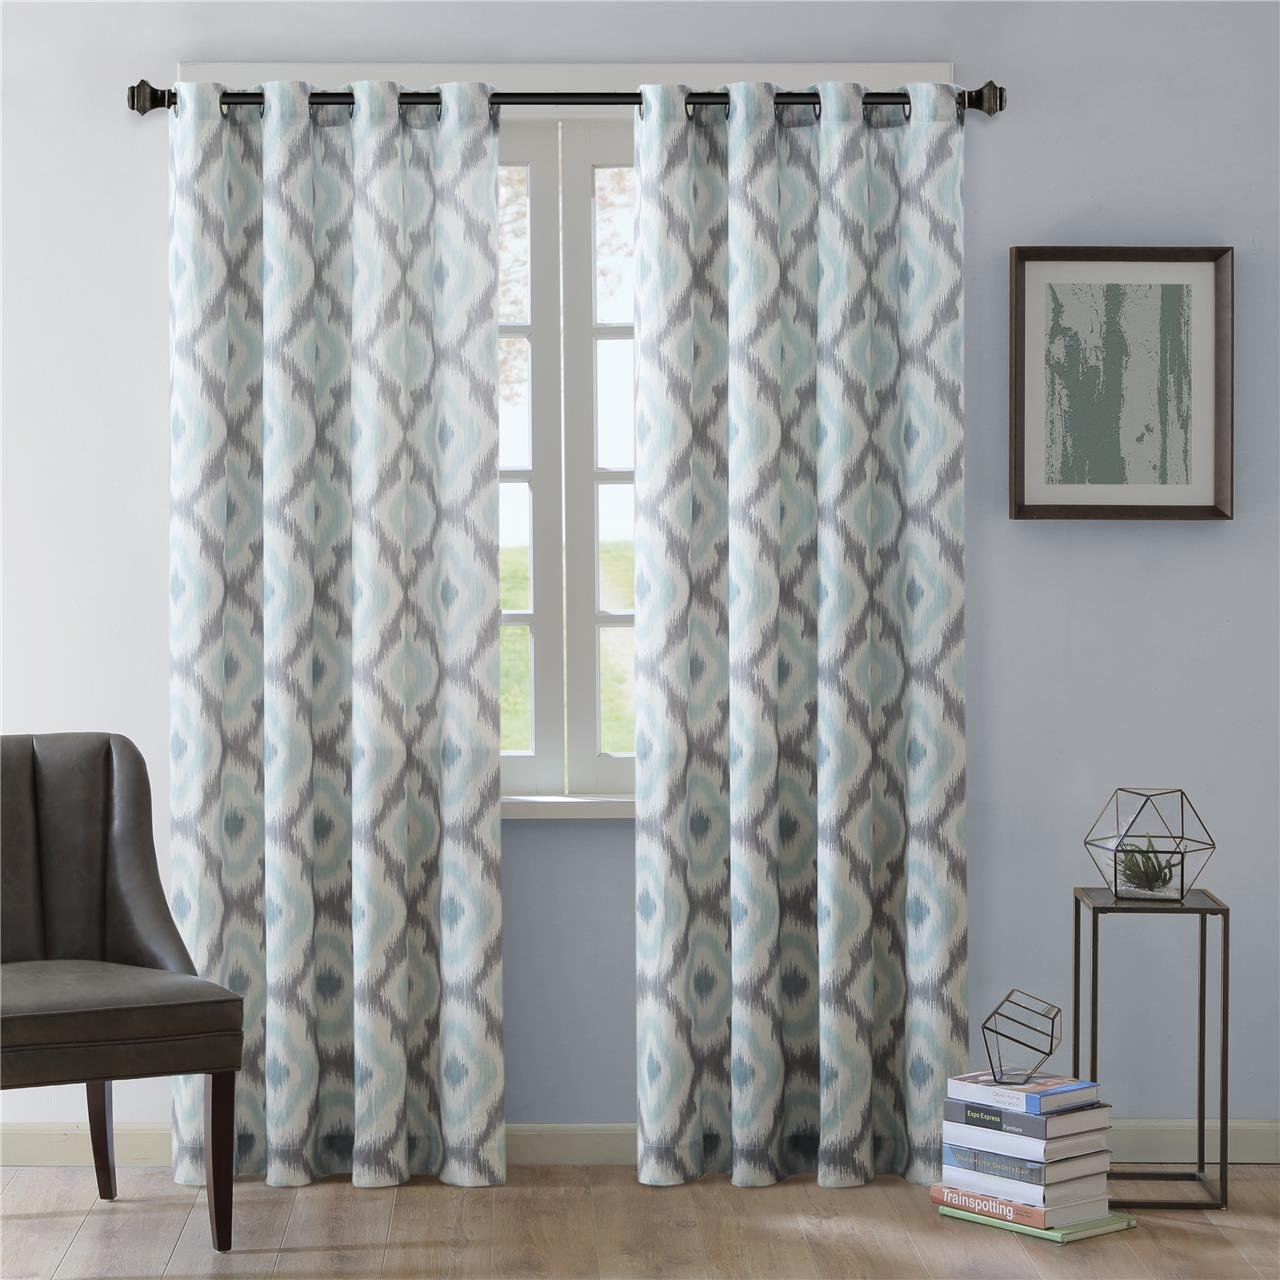 Amazon Ink Ivy Grommet Curtains For Living Room Ankara Print Taupe Window Bedroom Family Modern Contemporary